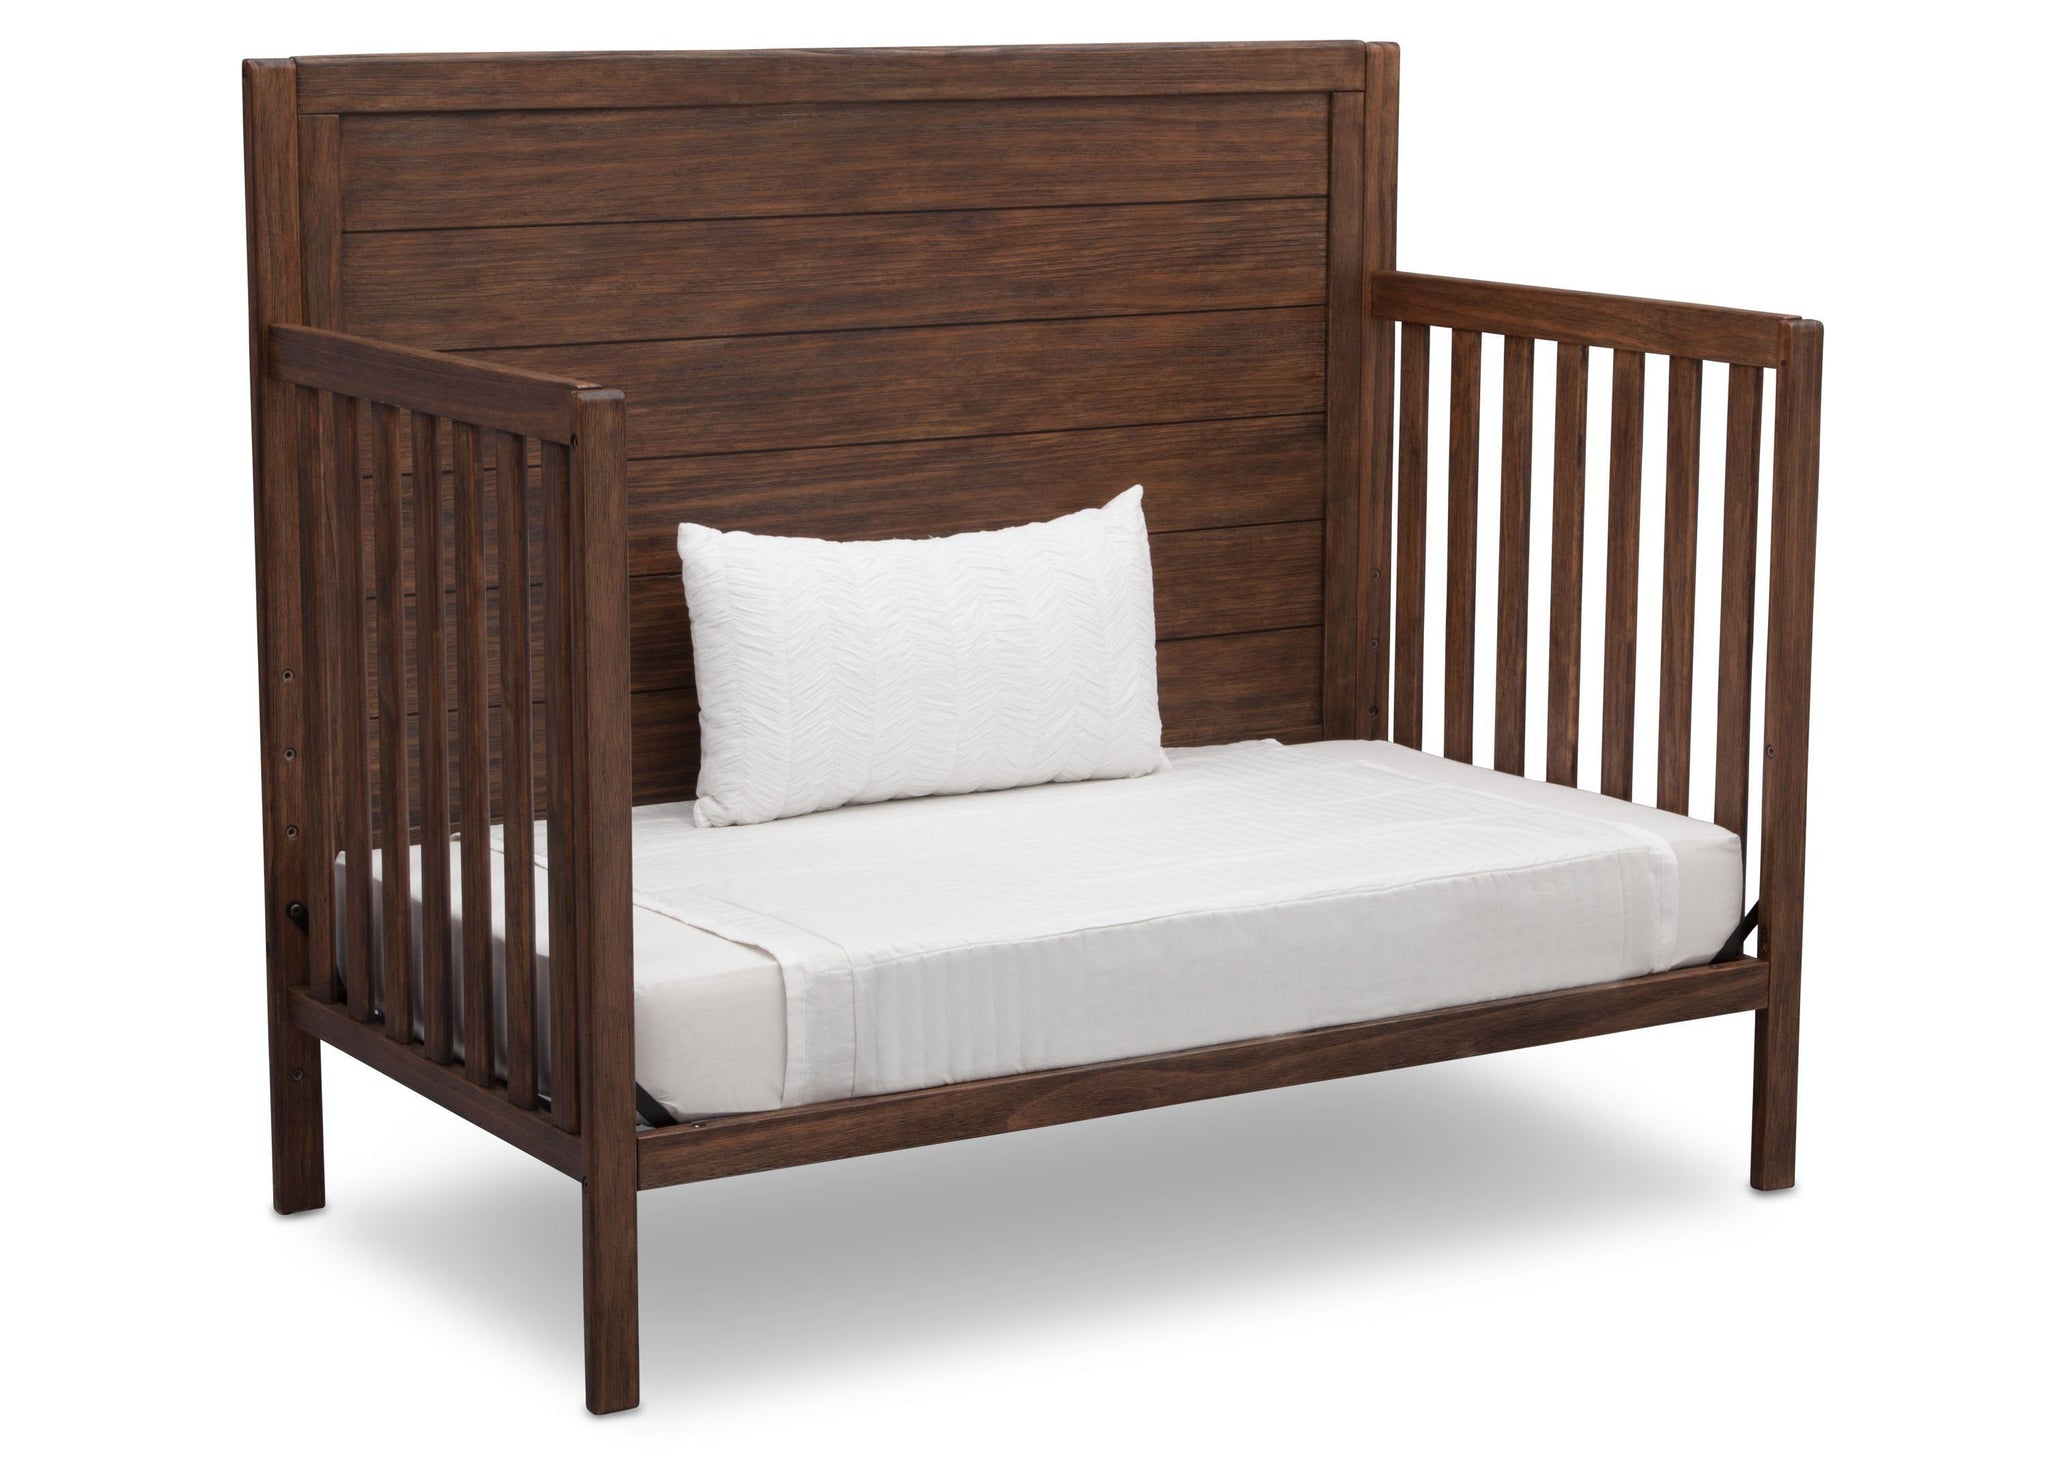 Serta Rustic Oak (229) Cambridge 4-in-1 Convertibel Crib, Daybed View c5c